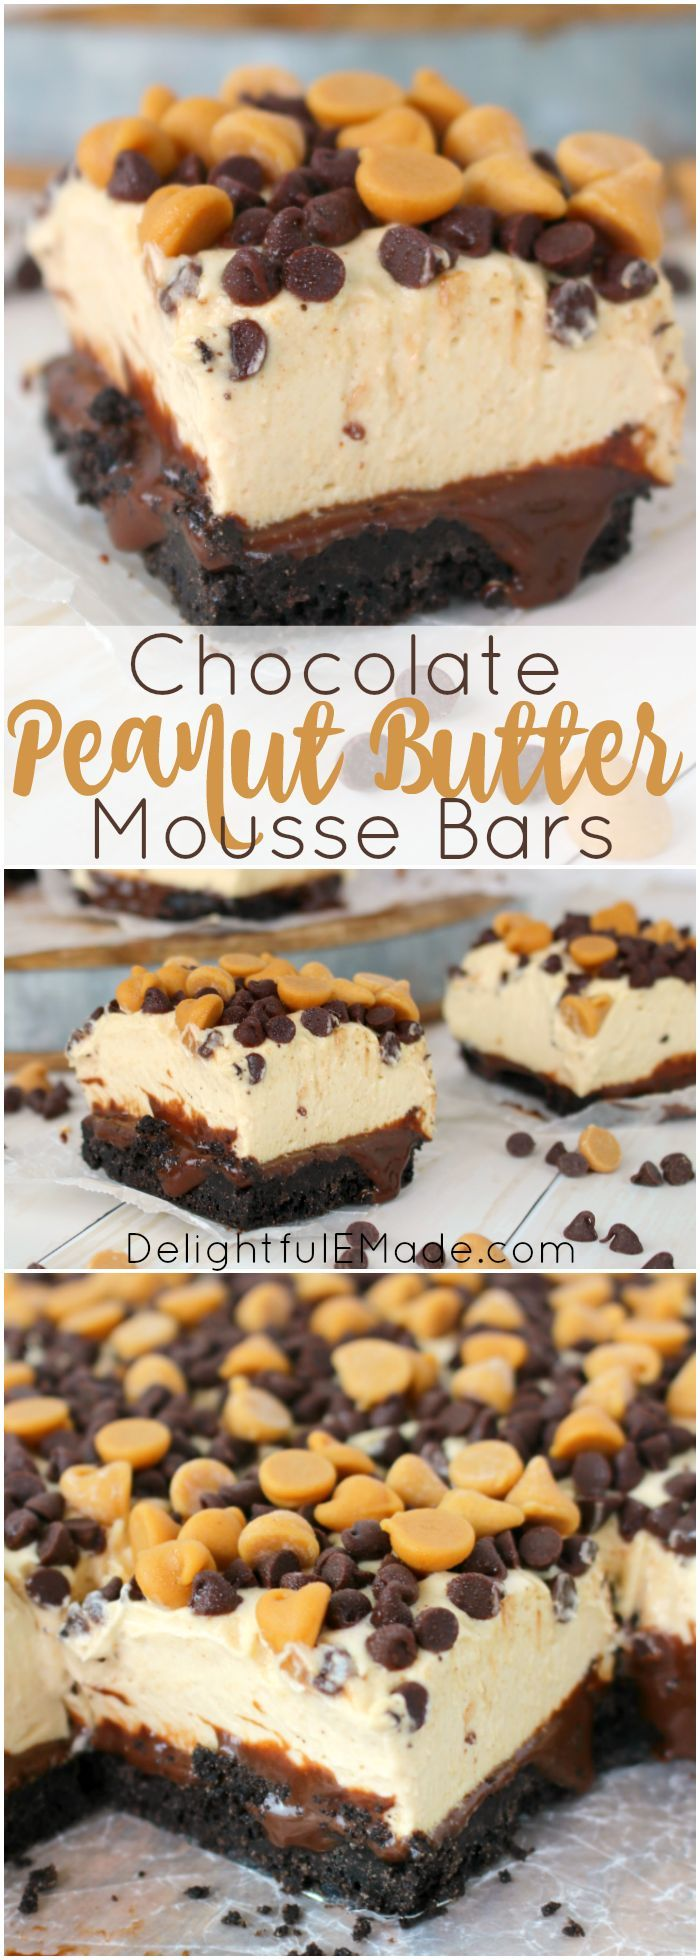 A chocolate and peanut butter lovers dream! With an OREO cookie crust, hot fudge, a thick layer of peanut butter mousse and topped with chocolate and peanut butter chips, these bars are cool, creamy and completely delicious!: